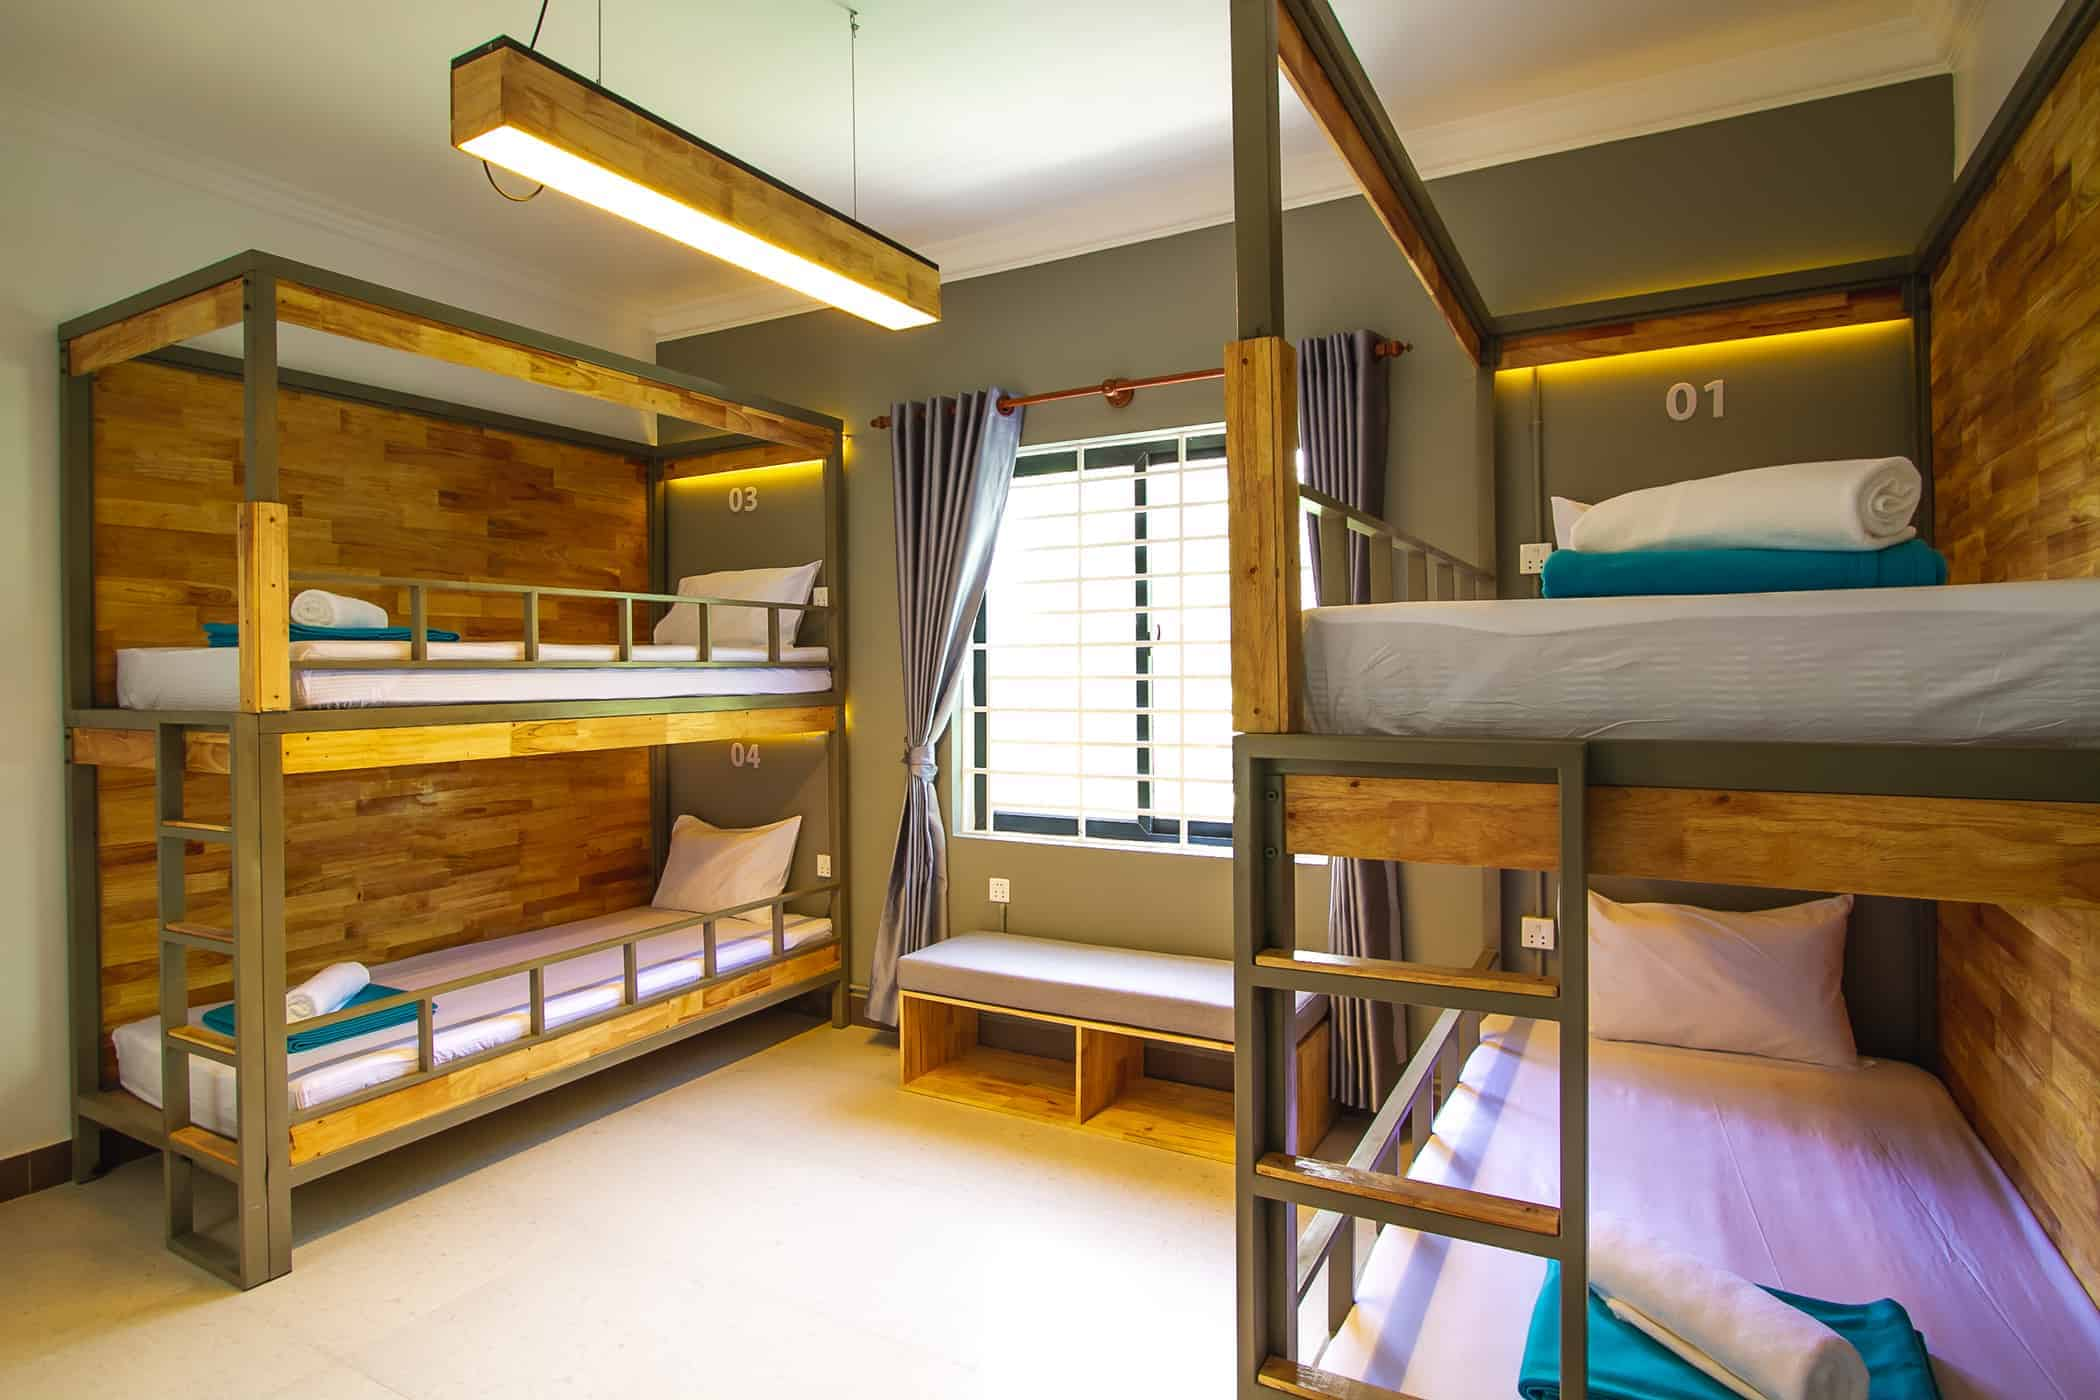 Groovy and comfy sleeping pods in the dormitory room of Sleep Pod Hostel, Siem Reap, Cambodia